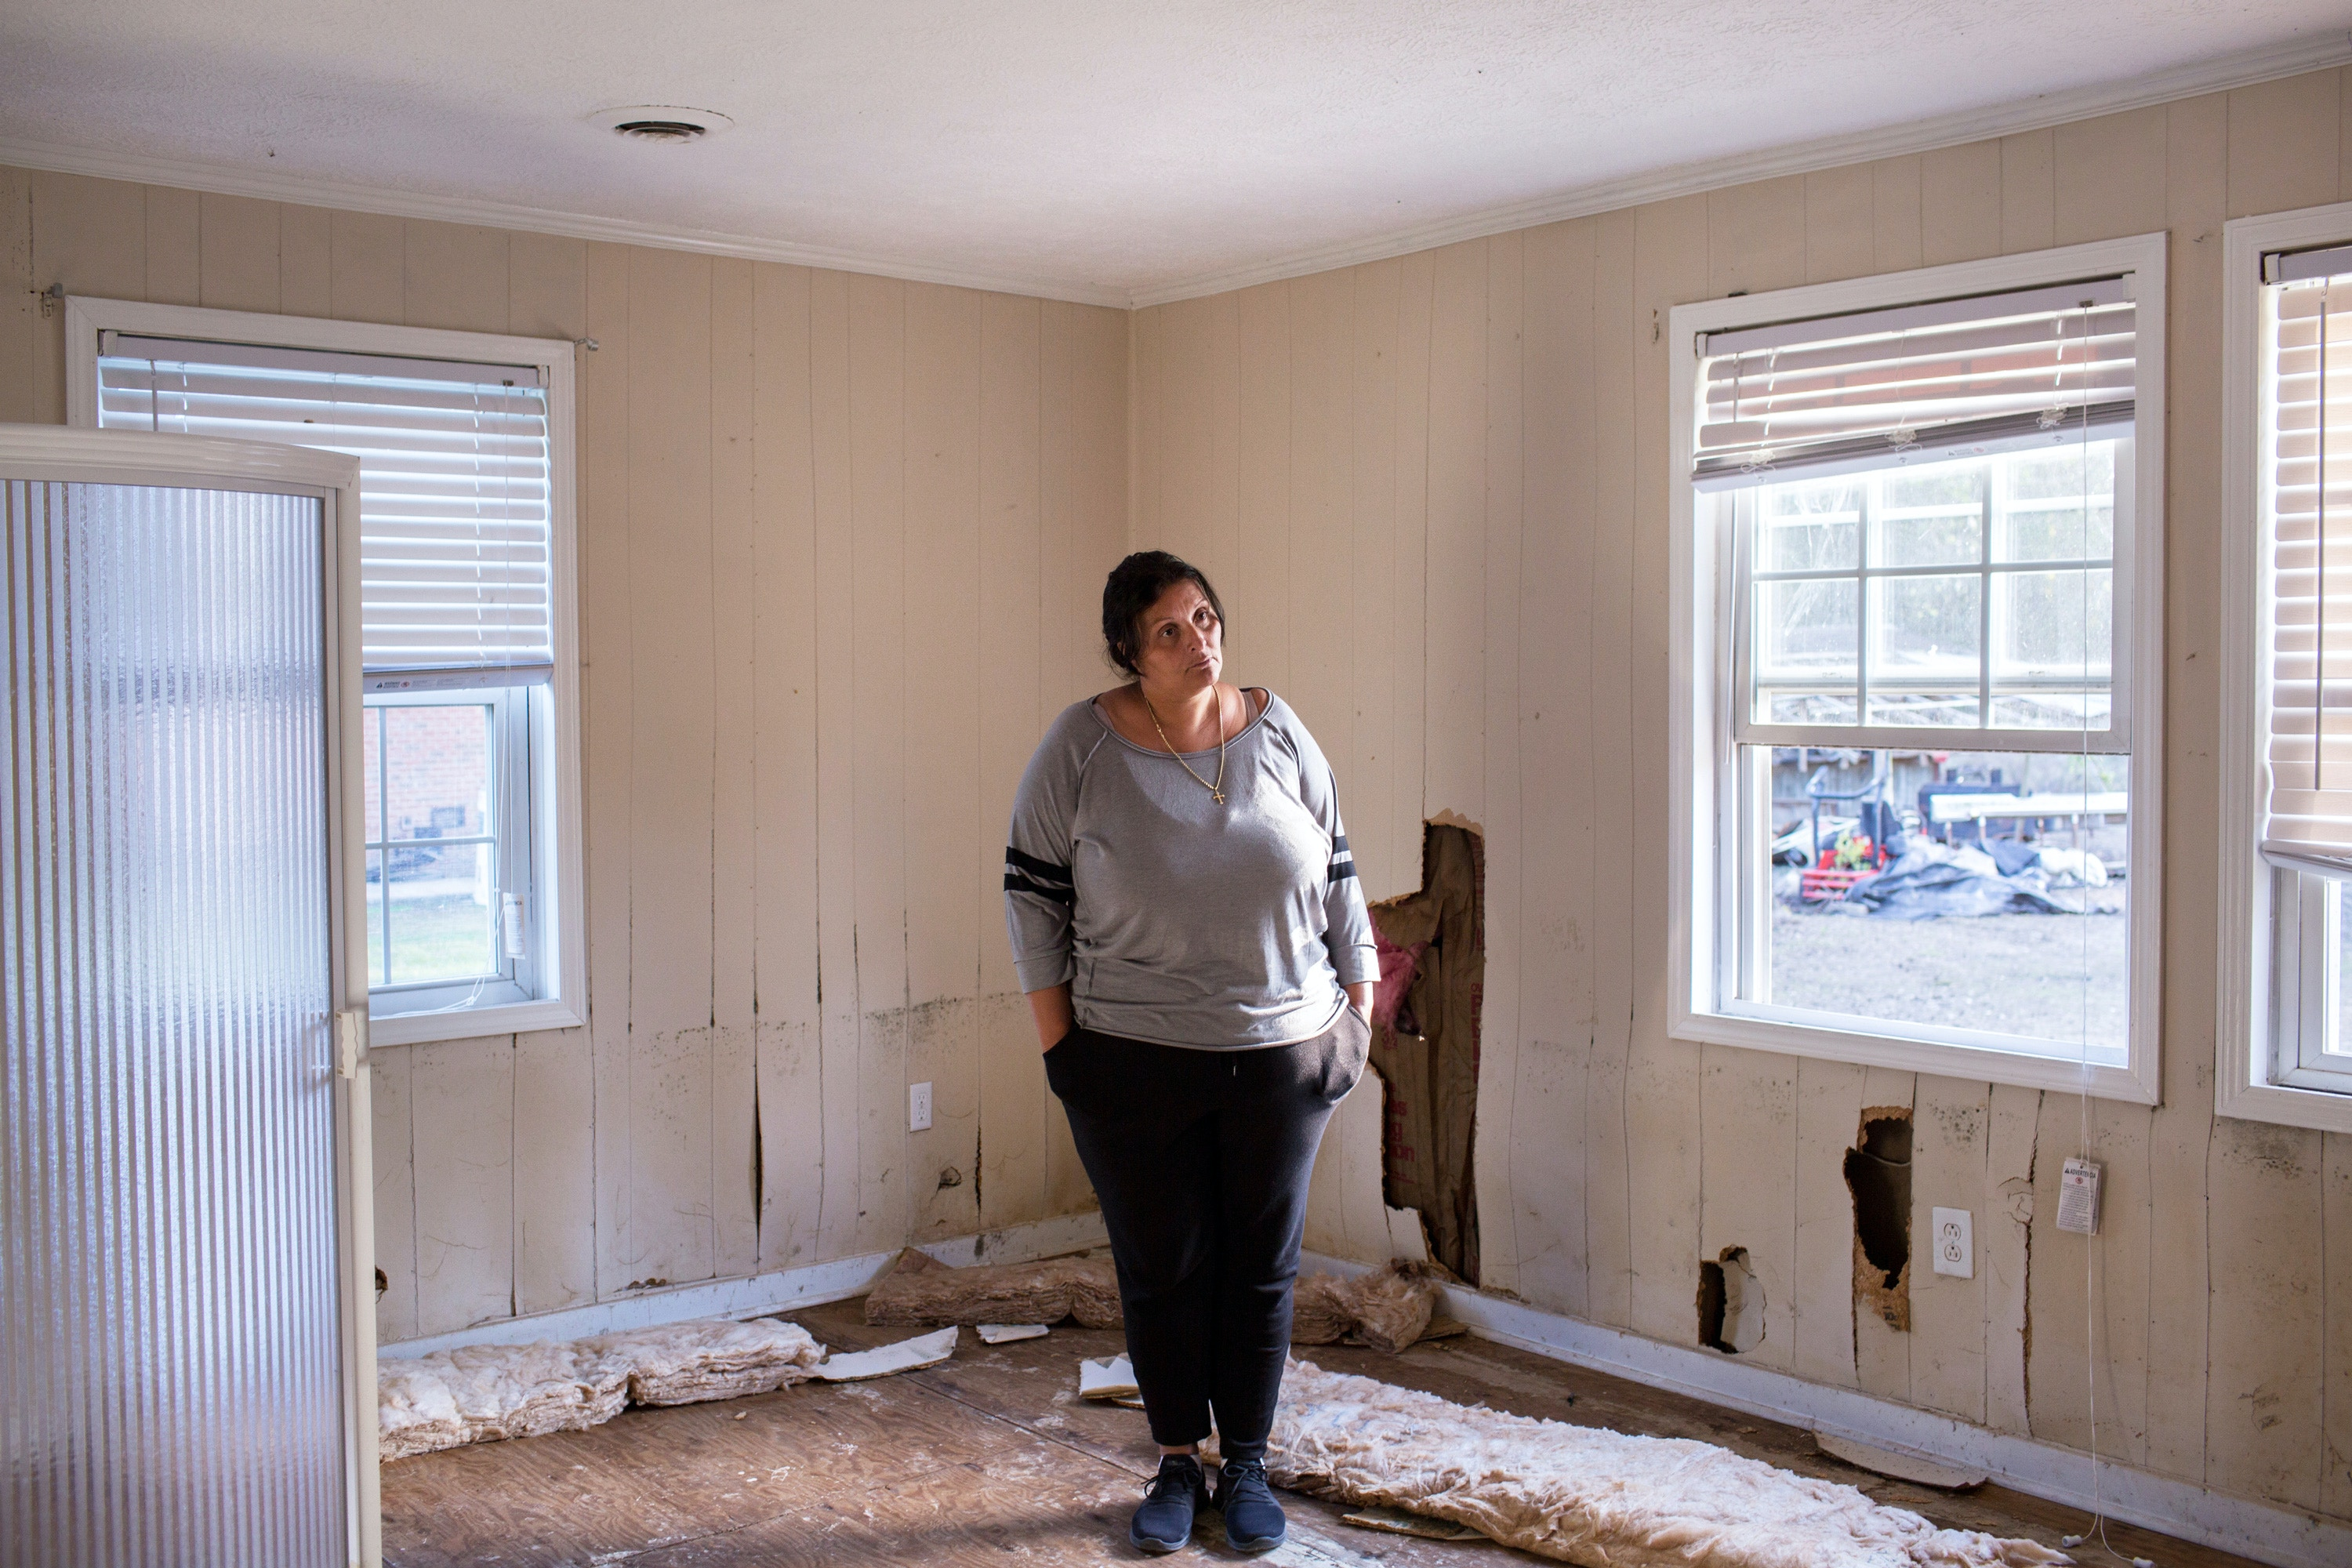 Latisha Jones poses for a portrait in her home, which has been condemned, in Maxton, N.C., about 25 miles northwest of Lumberton. Photo: Natalie Keyssar